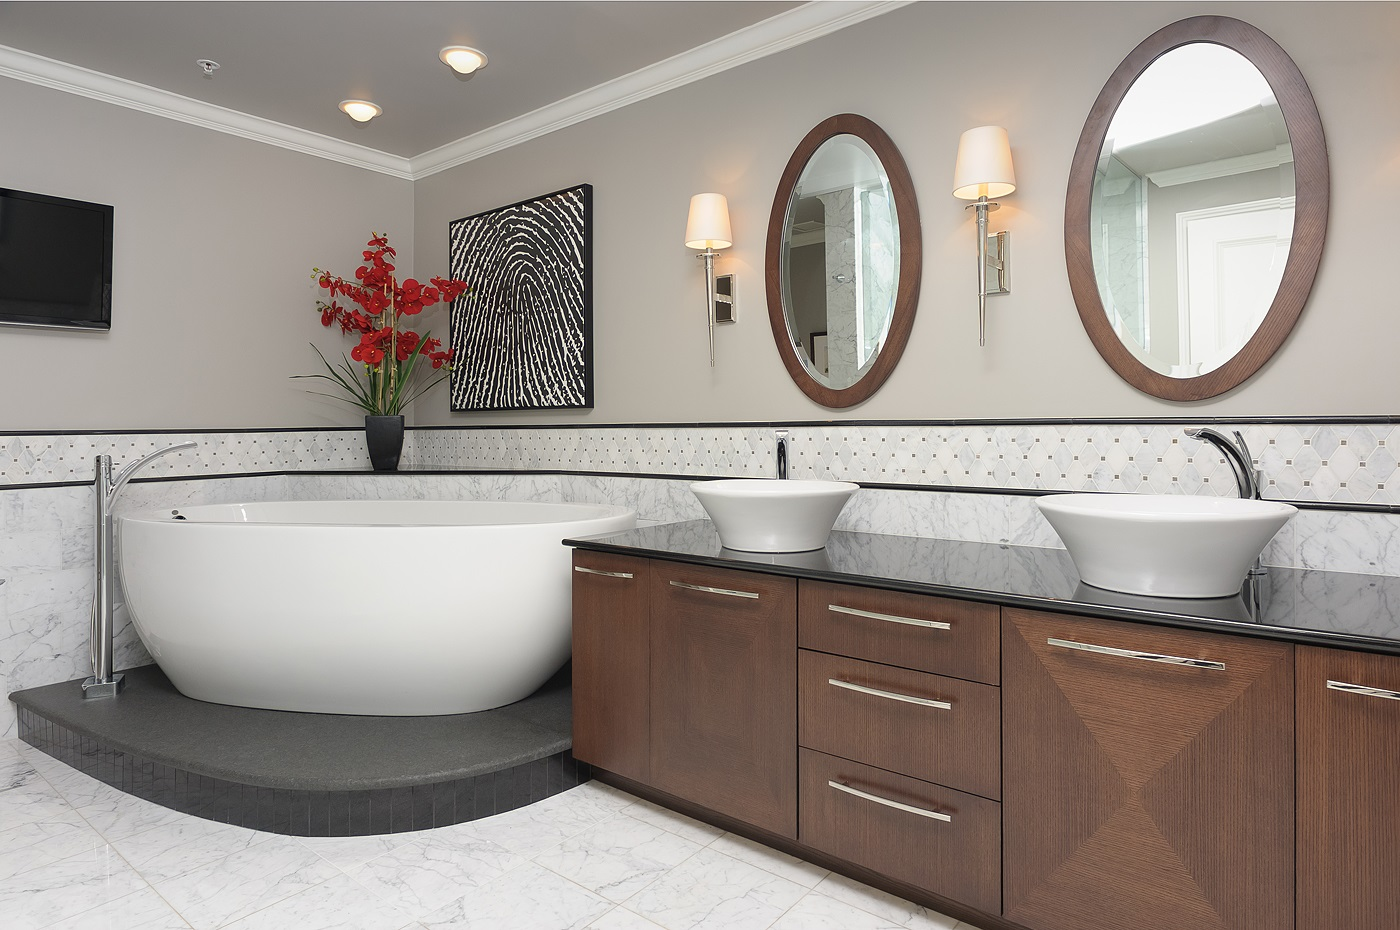 white bathroom, neil kelly design build, bathroom remodeling, bath renovation, neil kelly portland, neil kelly lake oswego,remodeling central oregon,